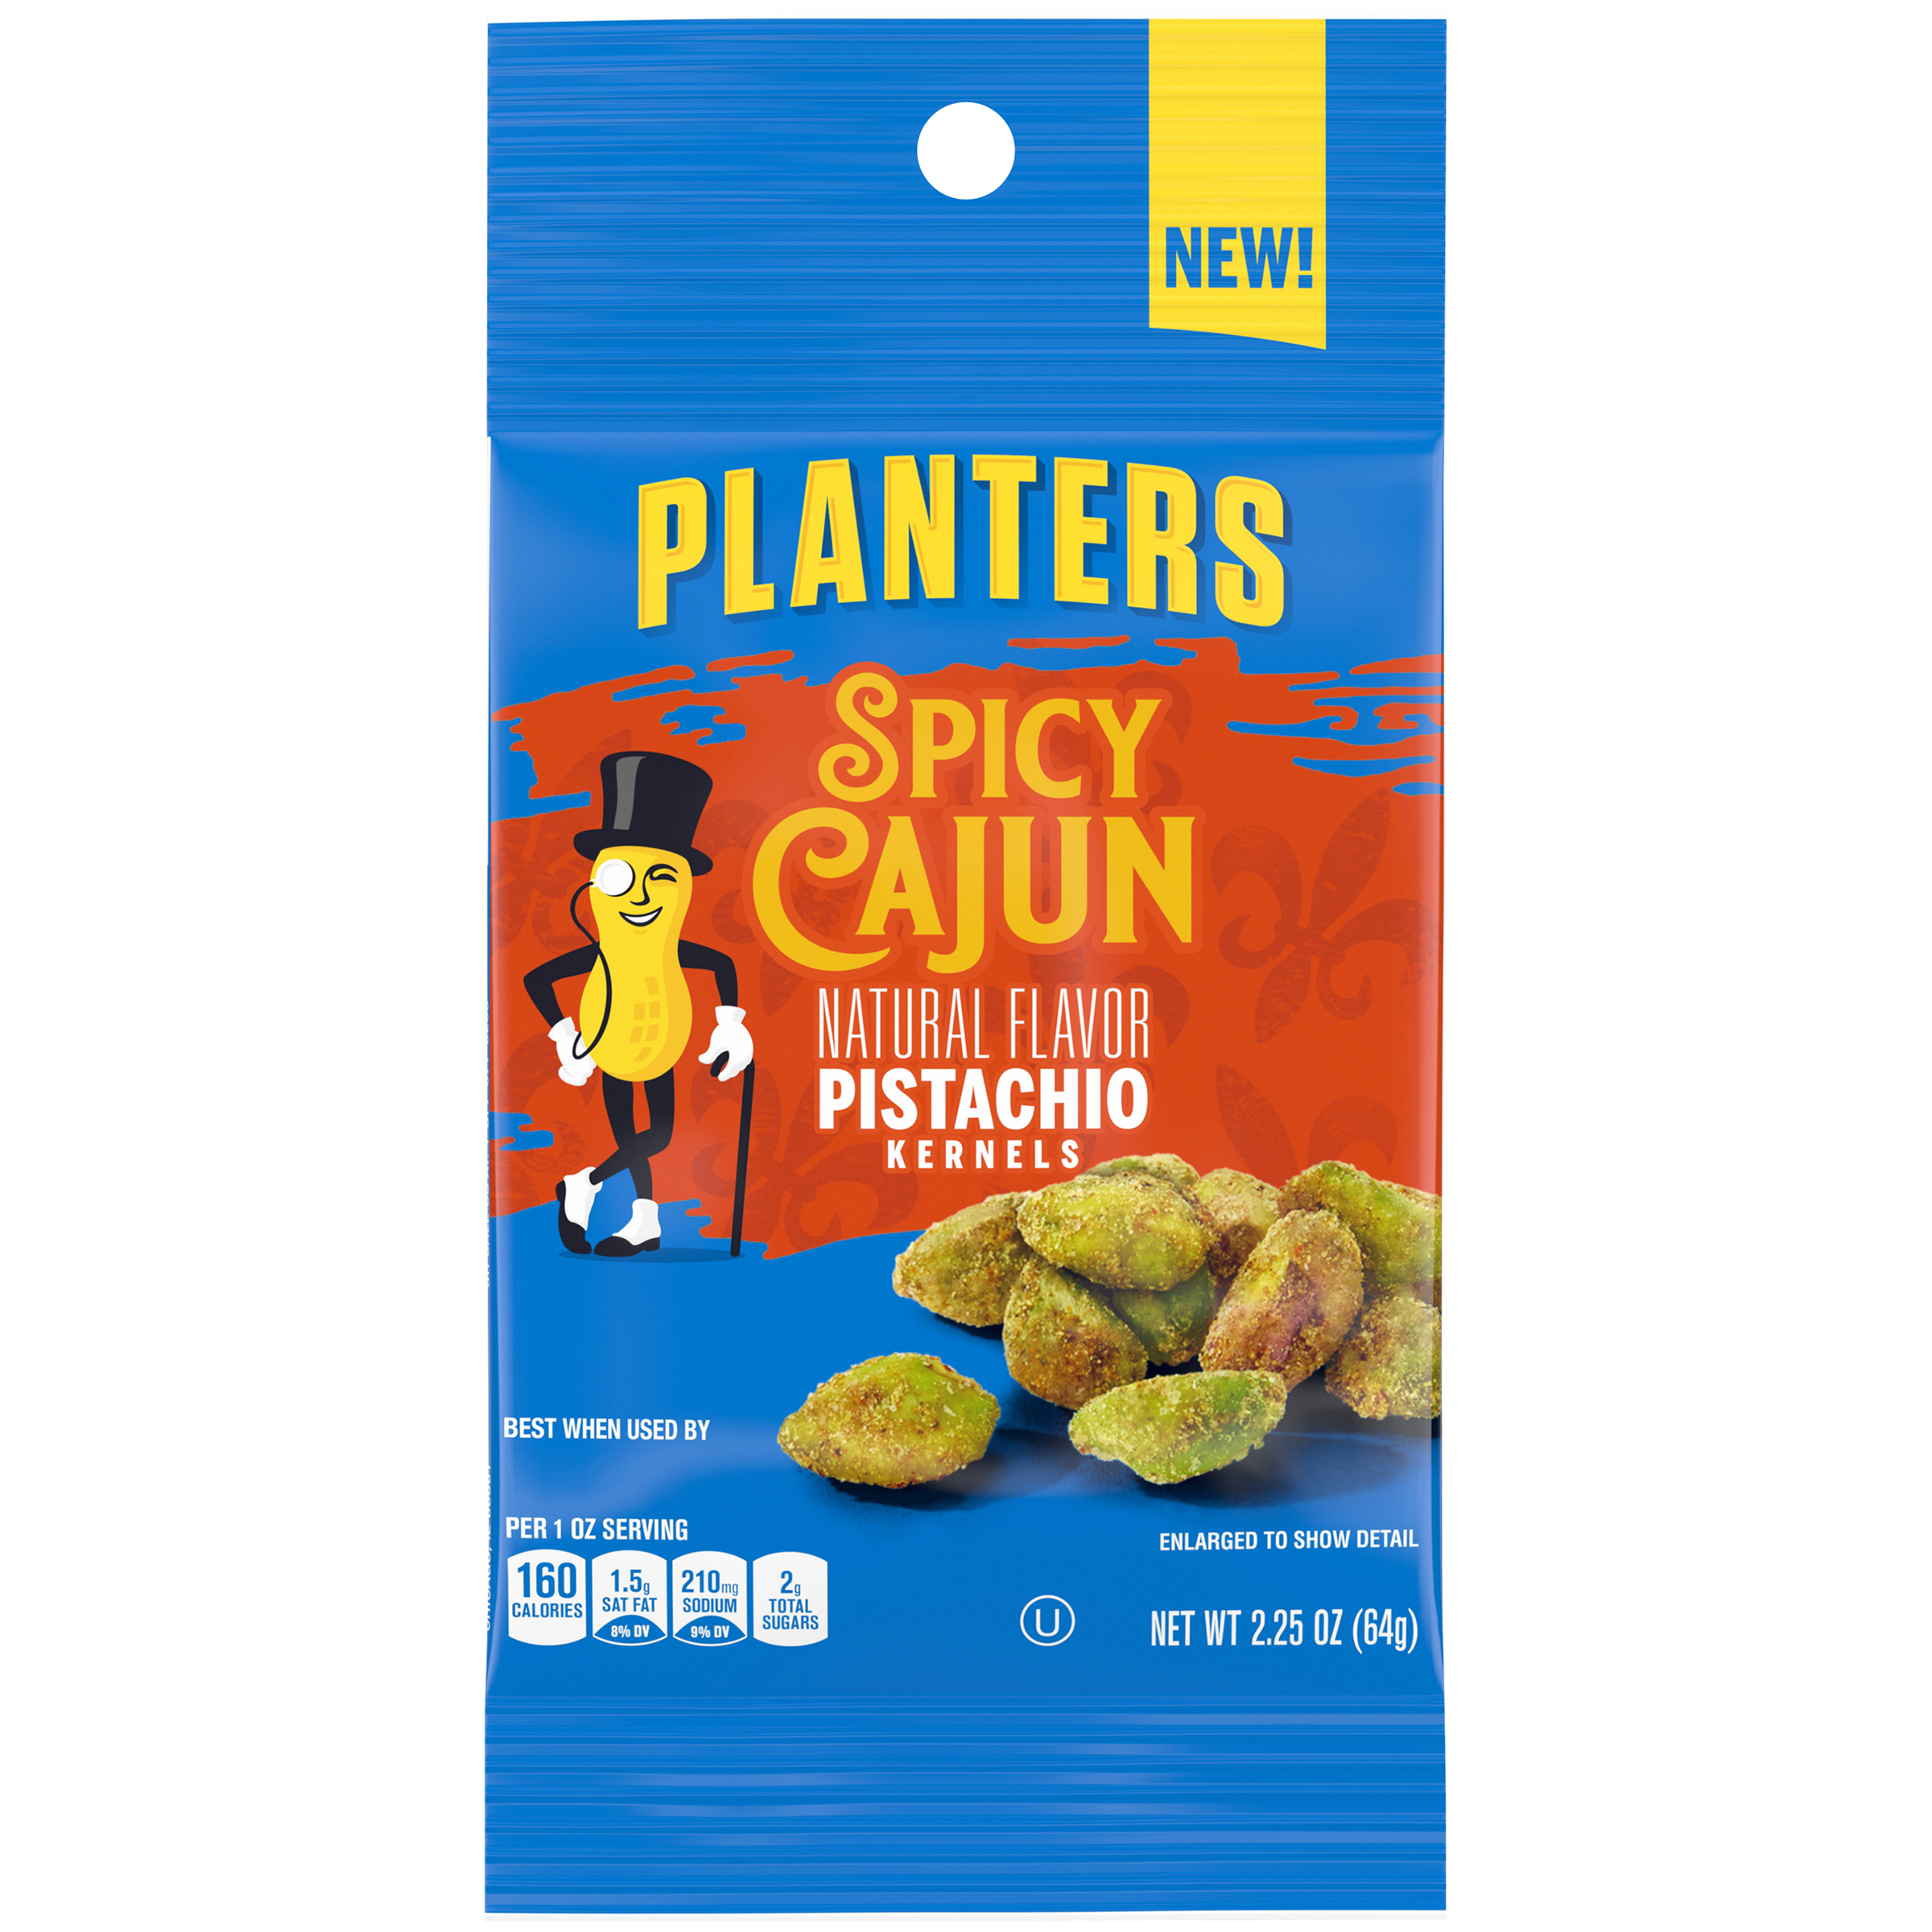 Planters Spicy Cajun Pistachios, 2.25 oz Packet